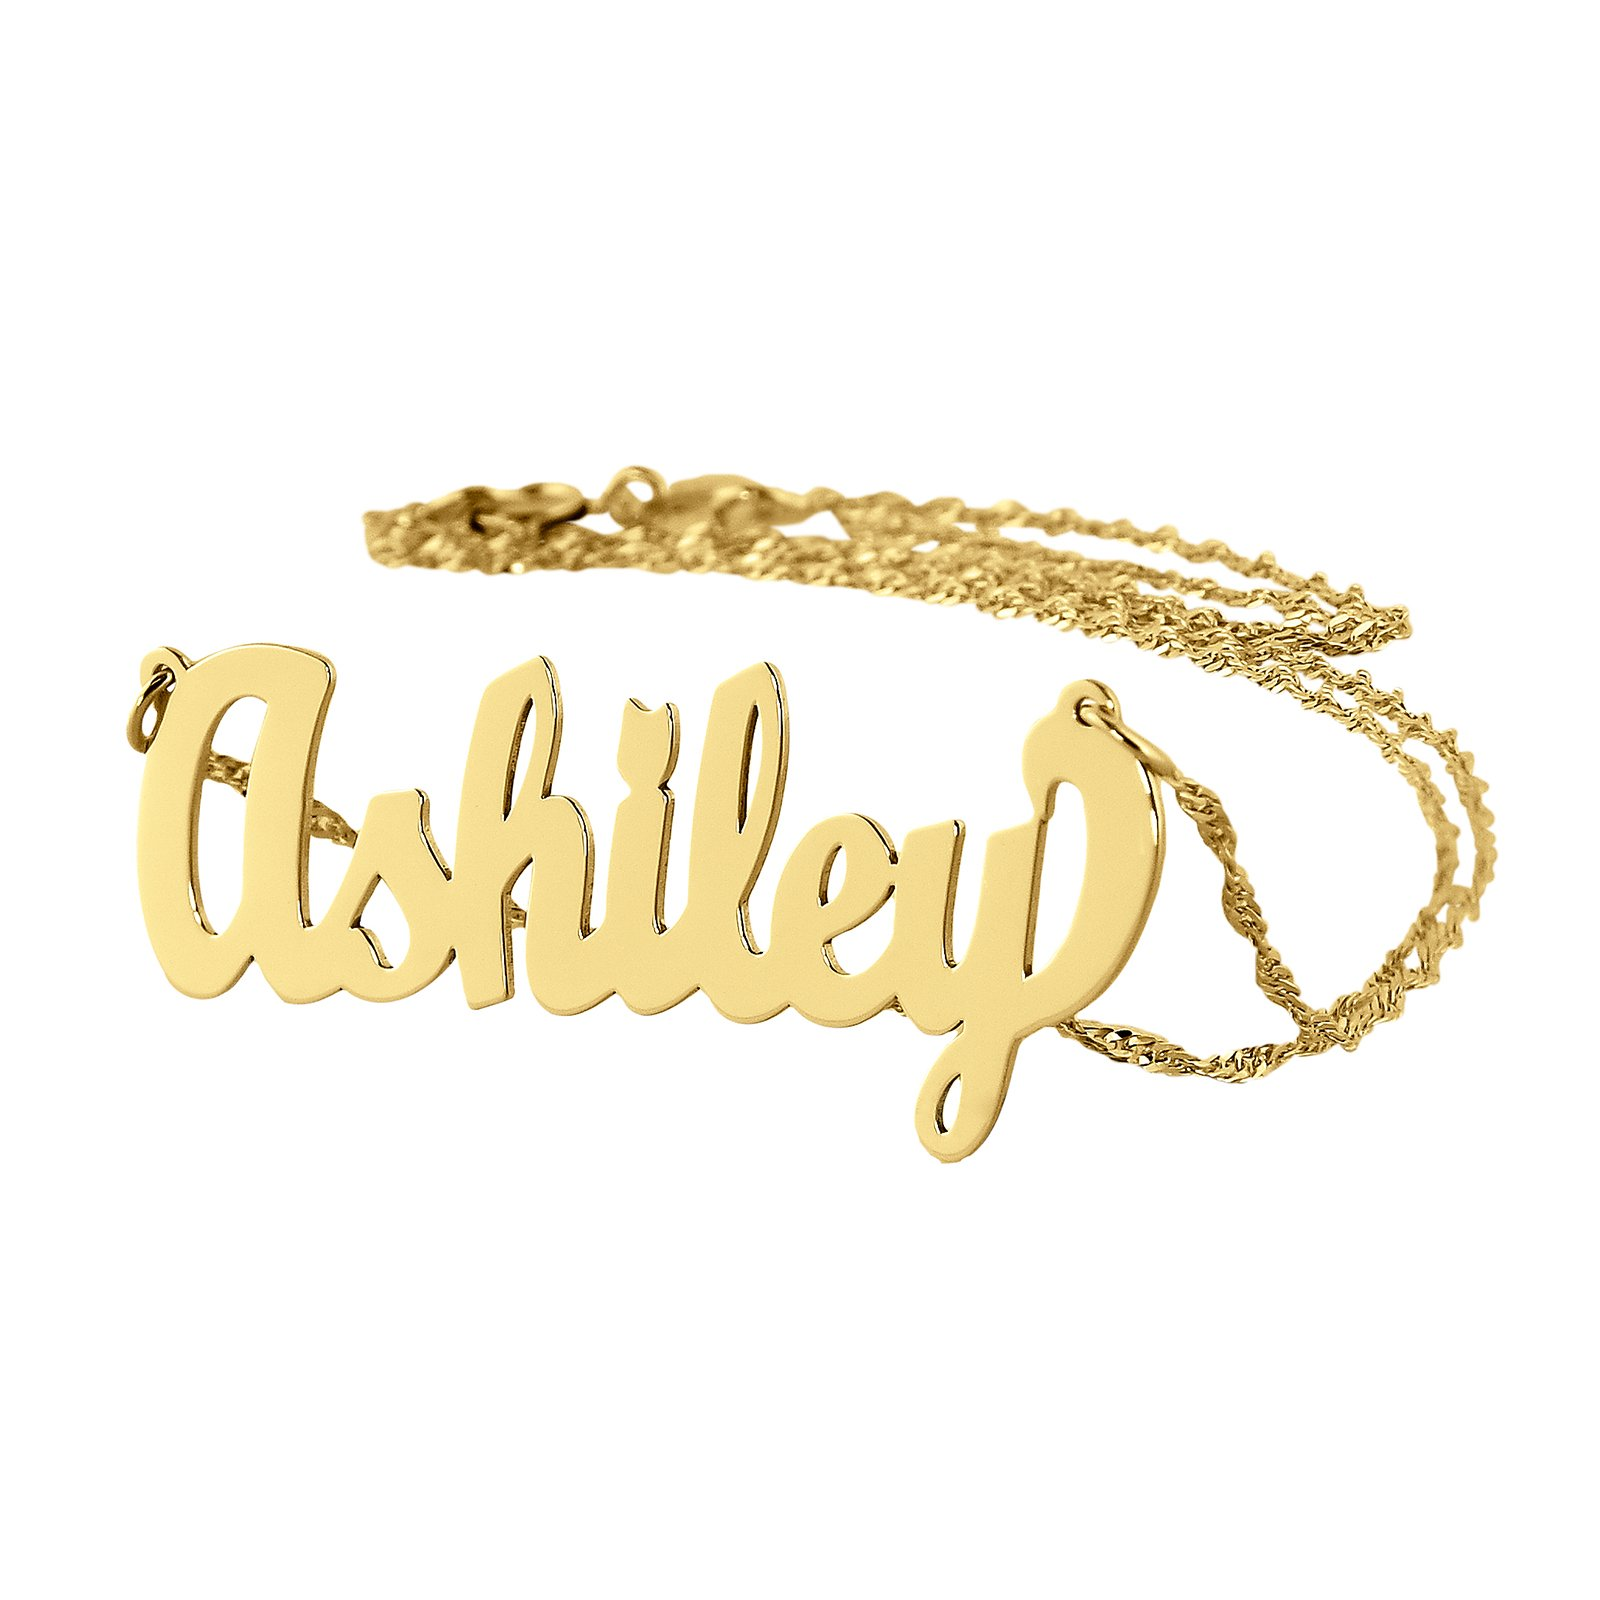 Dainty Name Necklace 10k Gold Personalized Pendant Chain 1.25 Inch Charm (18)